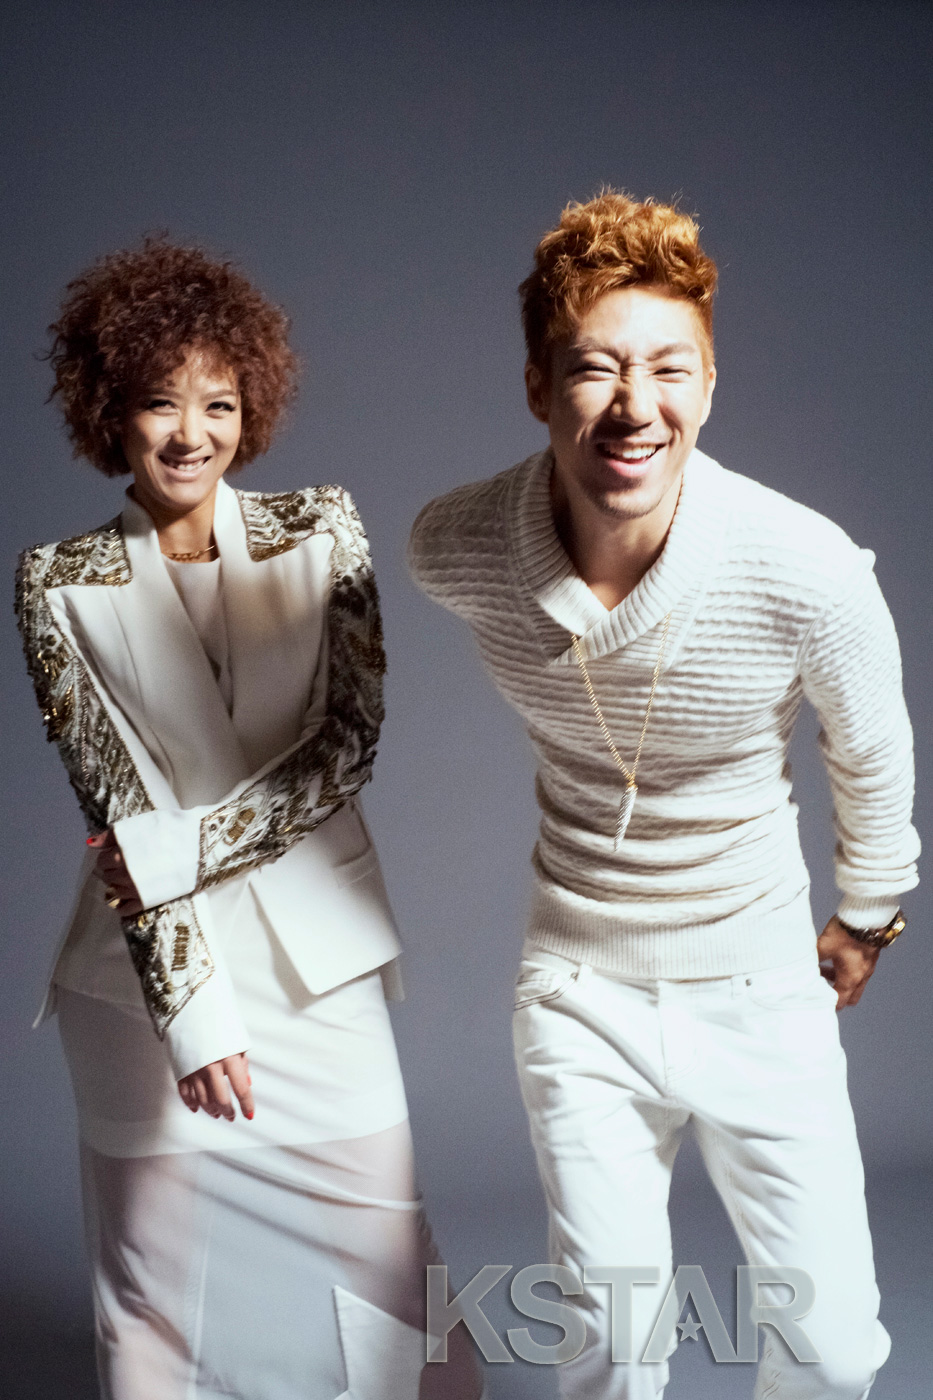 yoon mi rae and tiger jk dating Yoon mi-rae's vocals are yoon, tiger jk yoon earned the #1 spot on billboard's korea k-pop hot 100 list with her song touch love from the south korean.